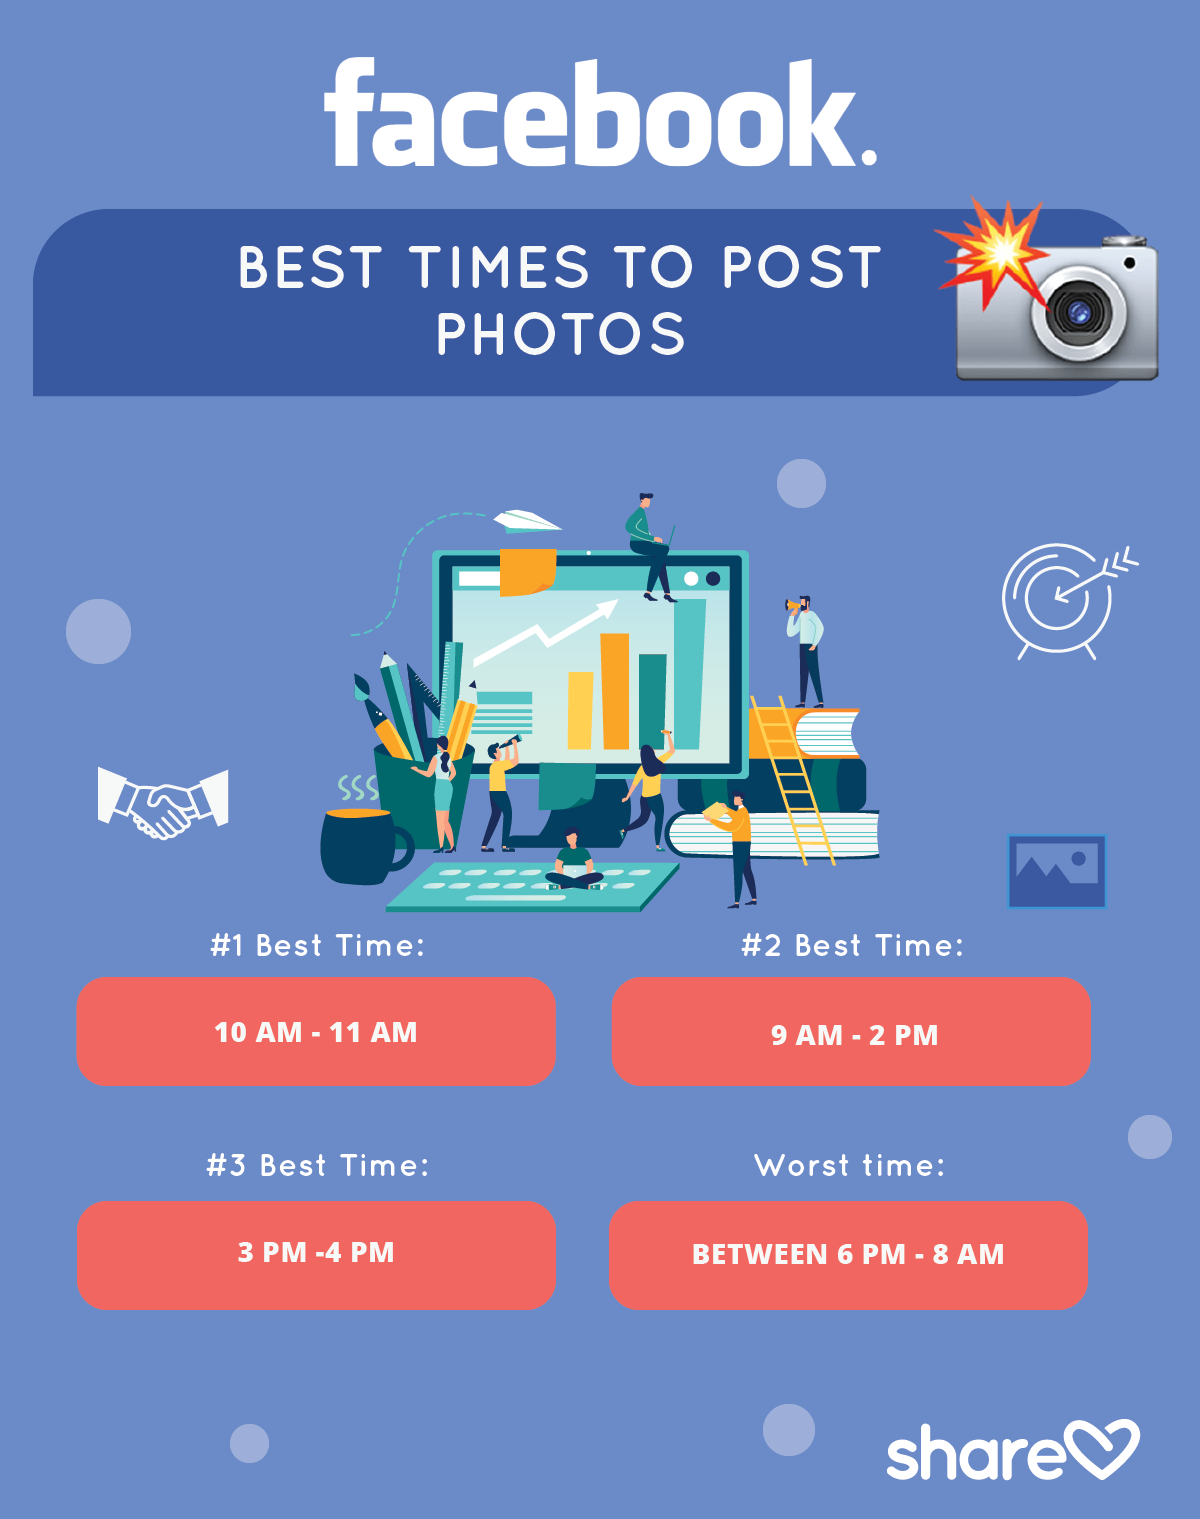 Best Times to Post Photos on Facebook